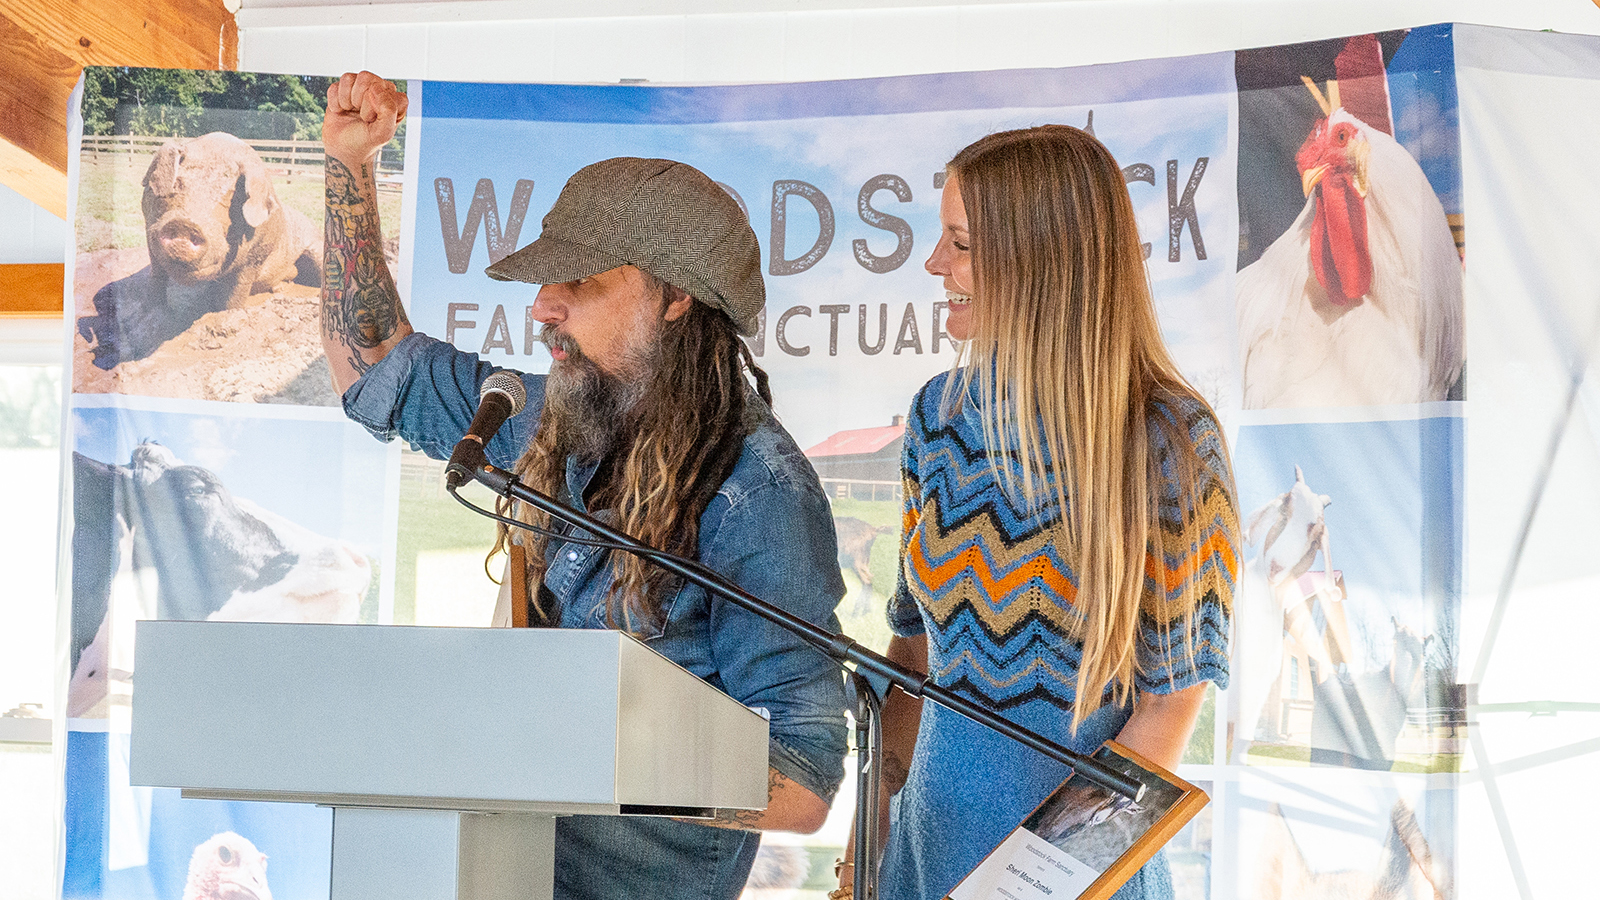 Rob Zombie on Woodstock Warrior Award, Fighting for Animals, Why Veganism Is Punk | Revolver